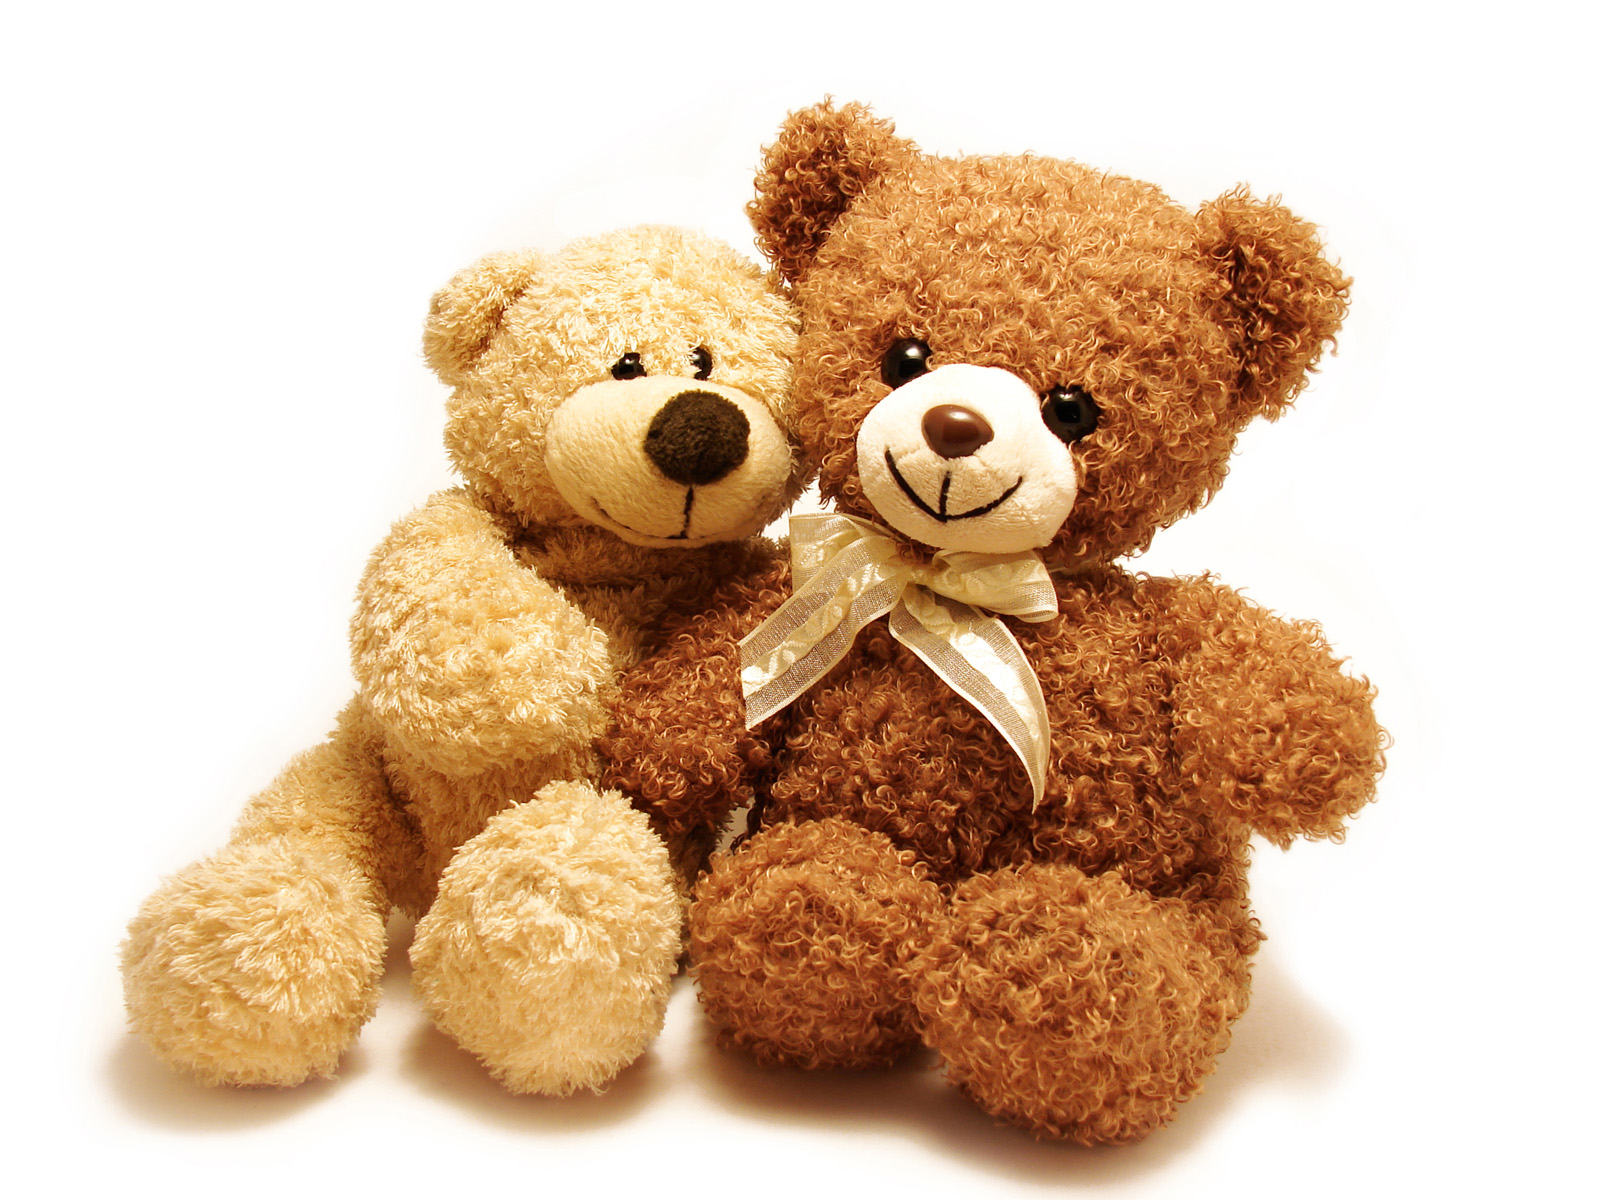 Snuggled cute toy bear 51555